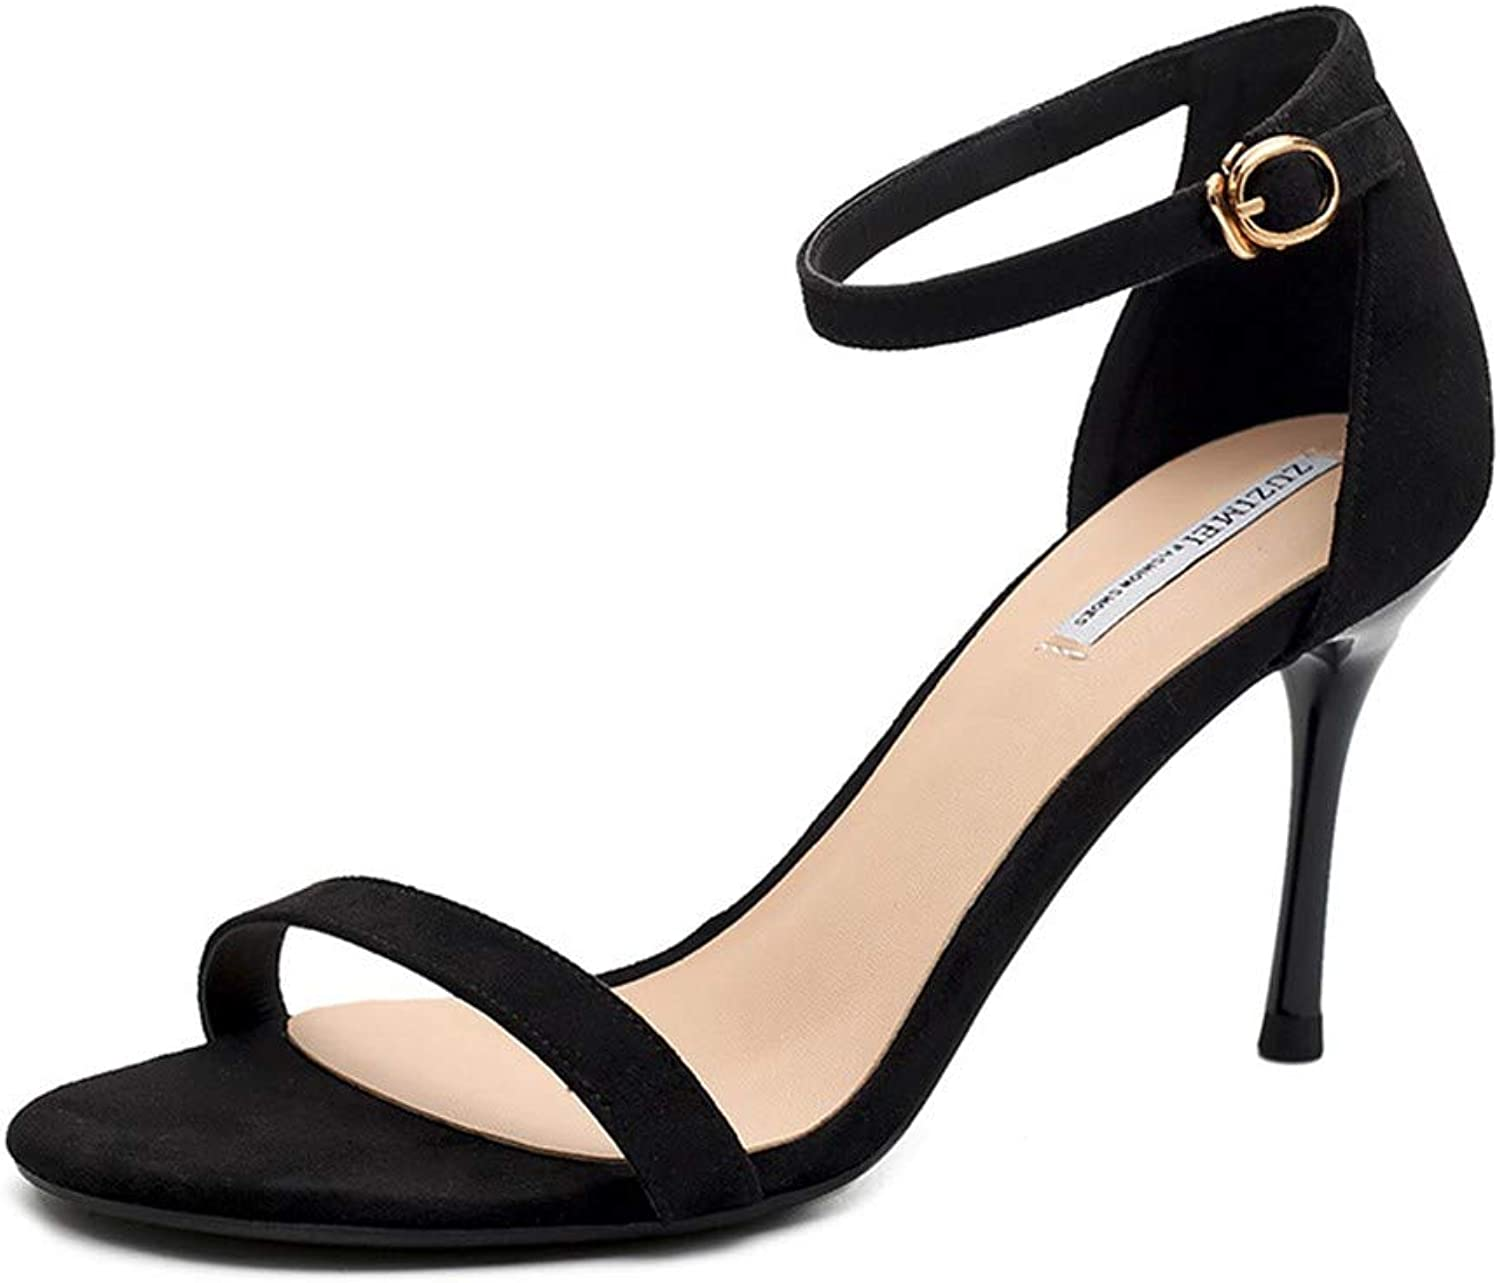 Top Shishang Black Button with high Heel Stiletto with Wild Open Toe Sandals